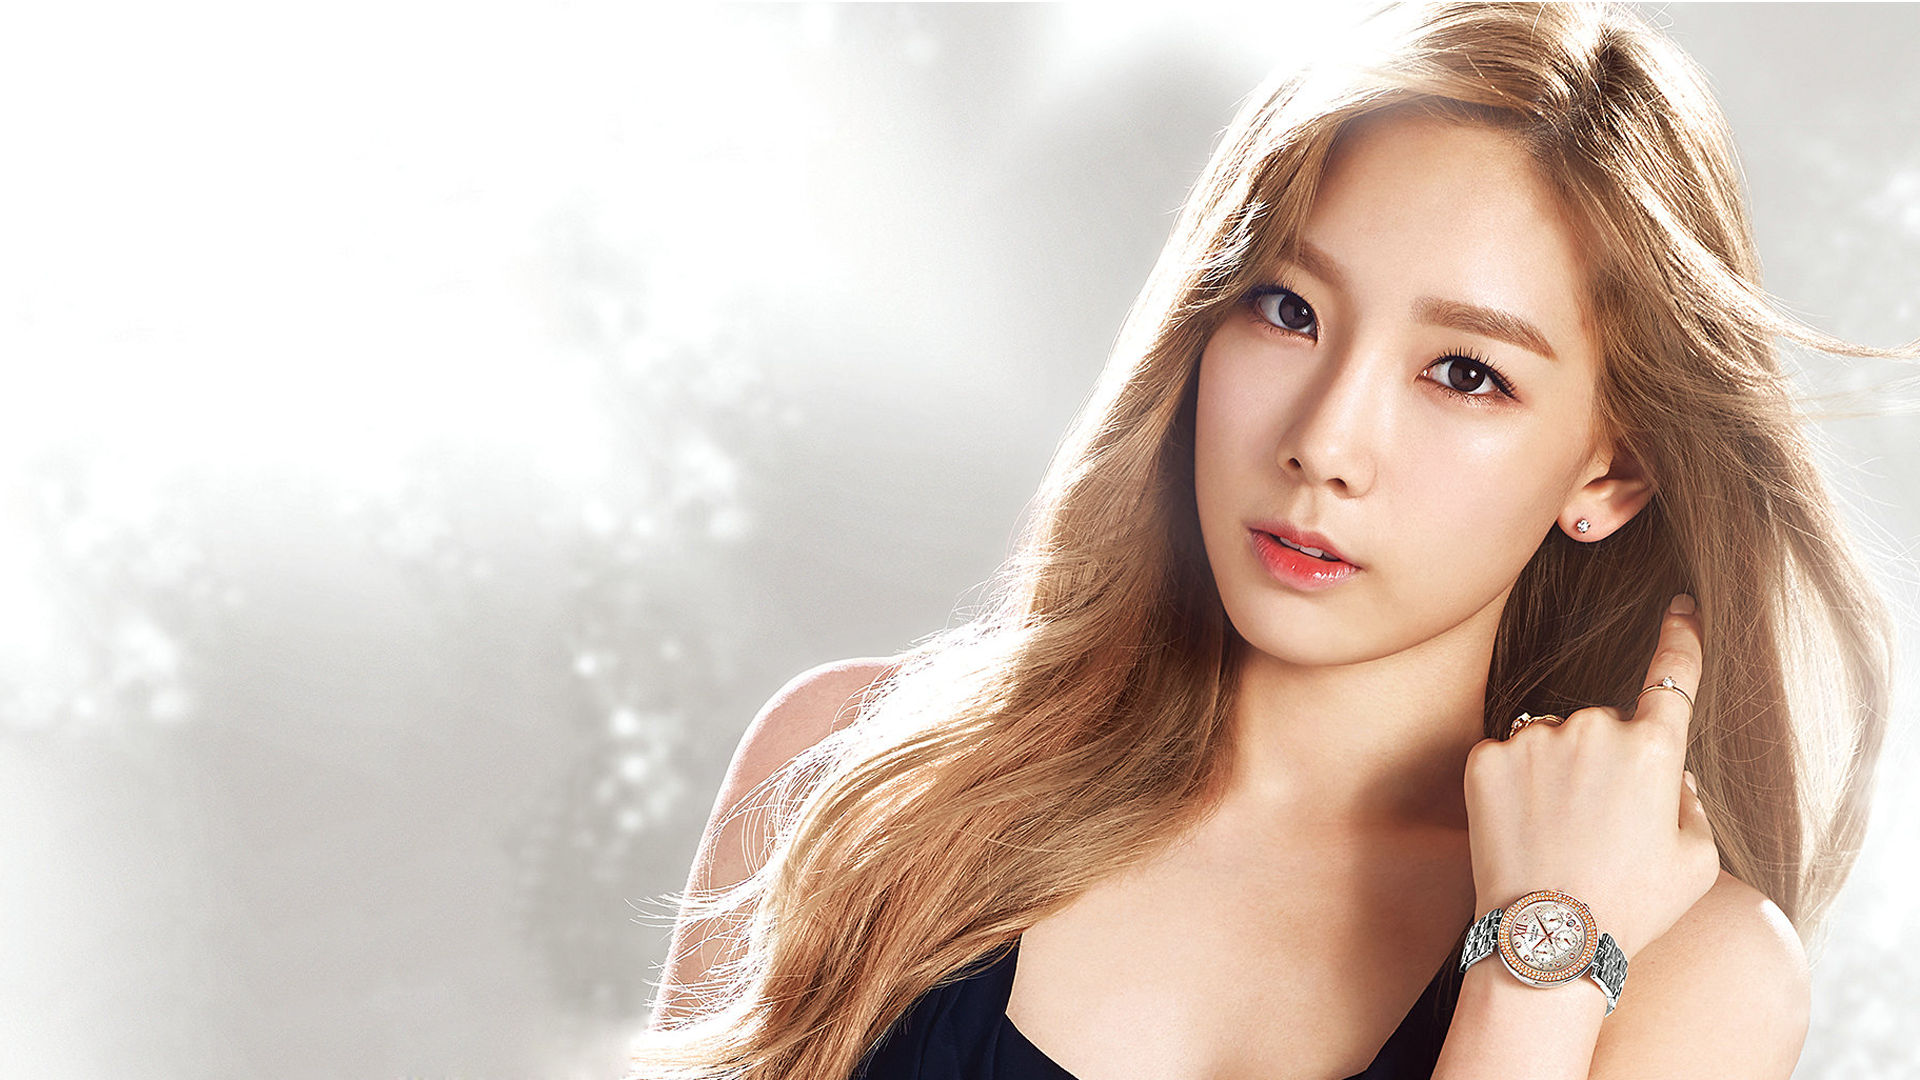 Taeyeon Wallpaper (1920x1080) by TaeyeonisBae on DeviantArt